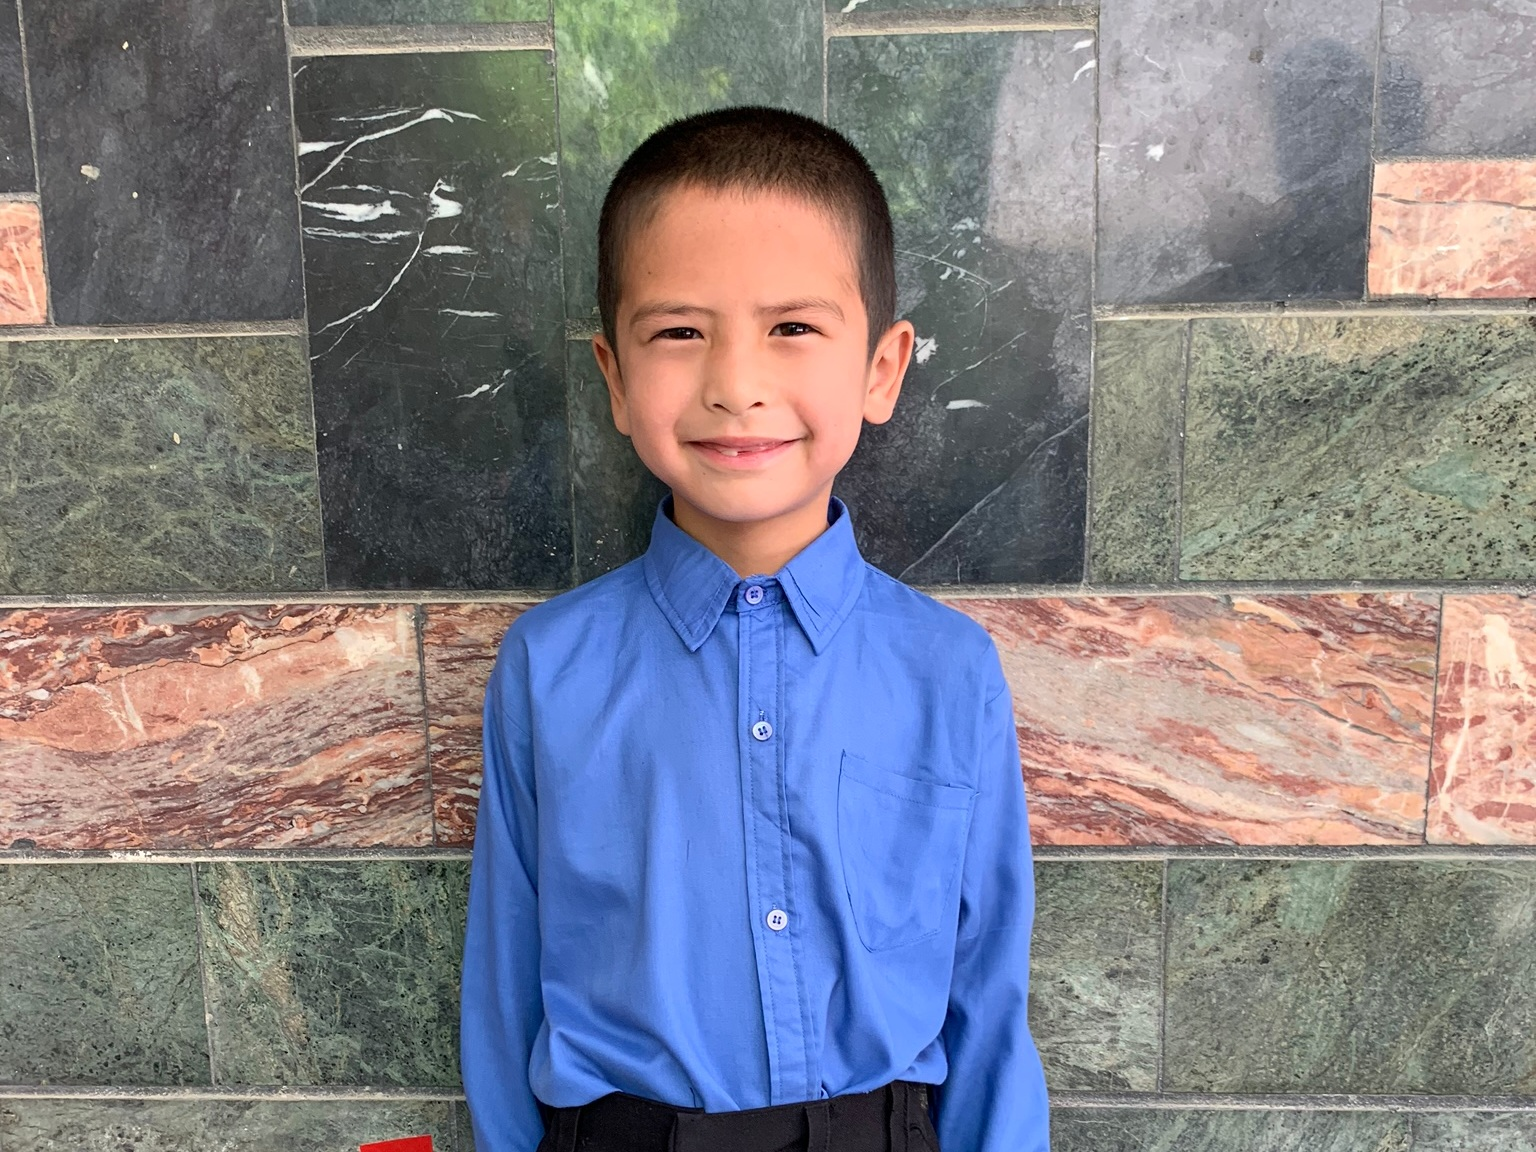 Ahmad Komil, Age 8 - Ahmad Komil has 4 siblings. His mother is unemployed. His father is a driver.BE AHMAD' KOMIL'S PARTNER>